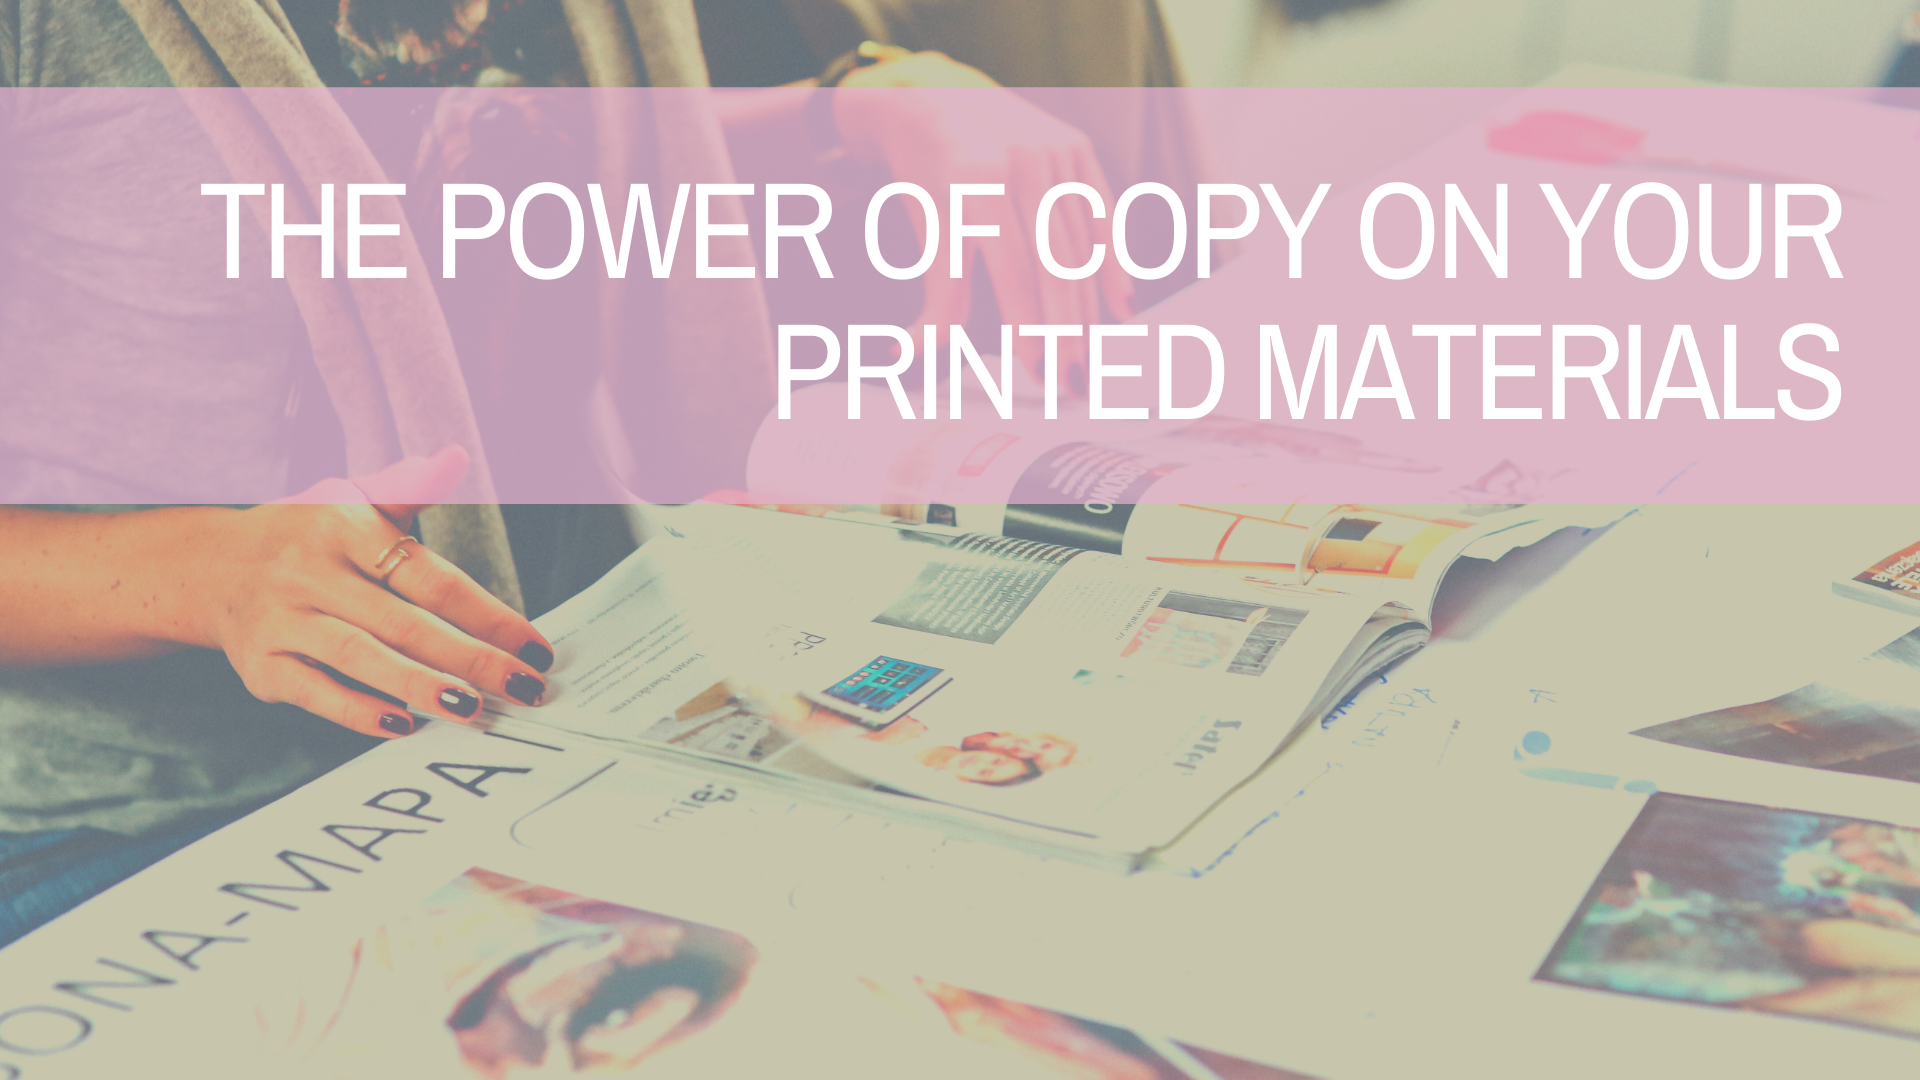 The Power of Copy on Your Printed Materials